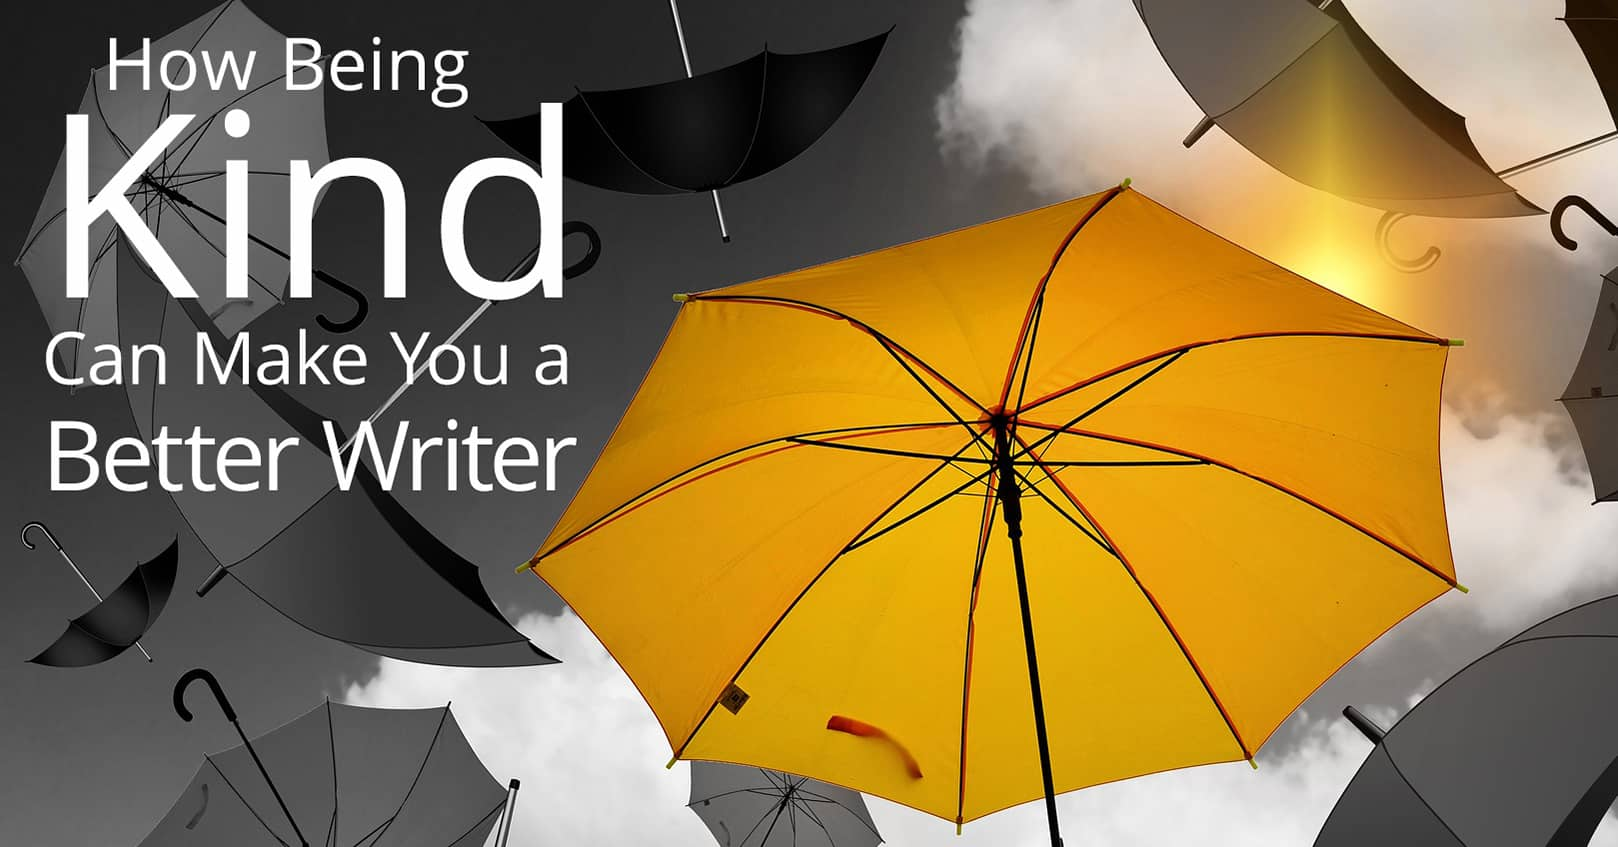 being kind makes you a better writer - kindness is a yellow umbrella